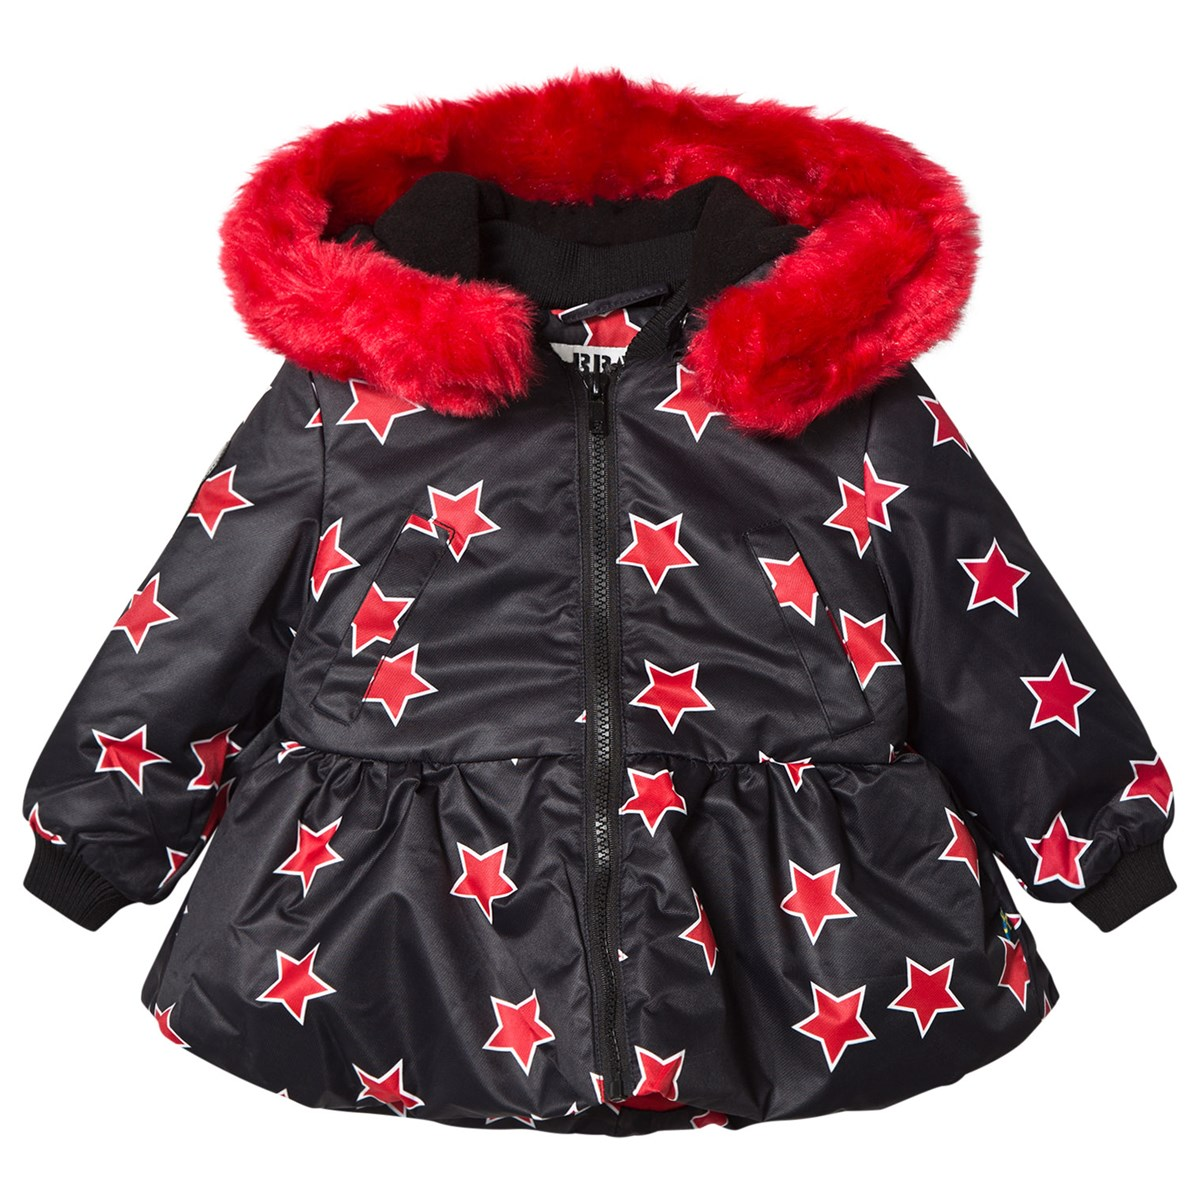 4e2d79308 The BRAND Star Peplum Jacket with Red Fur Trim